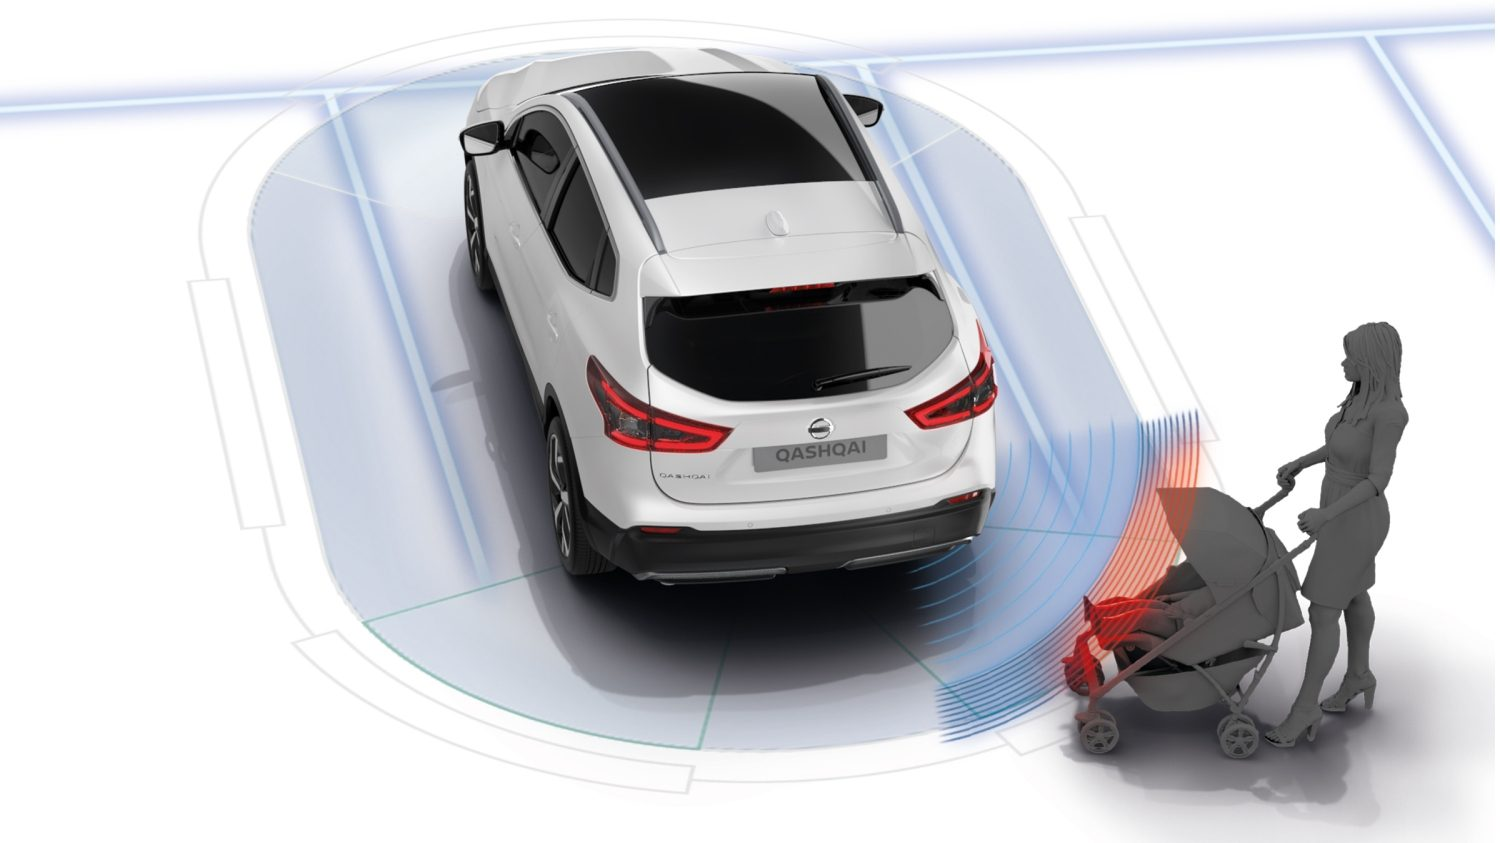 Nissan QASHQAI illustratie Moving Object Detection